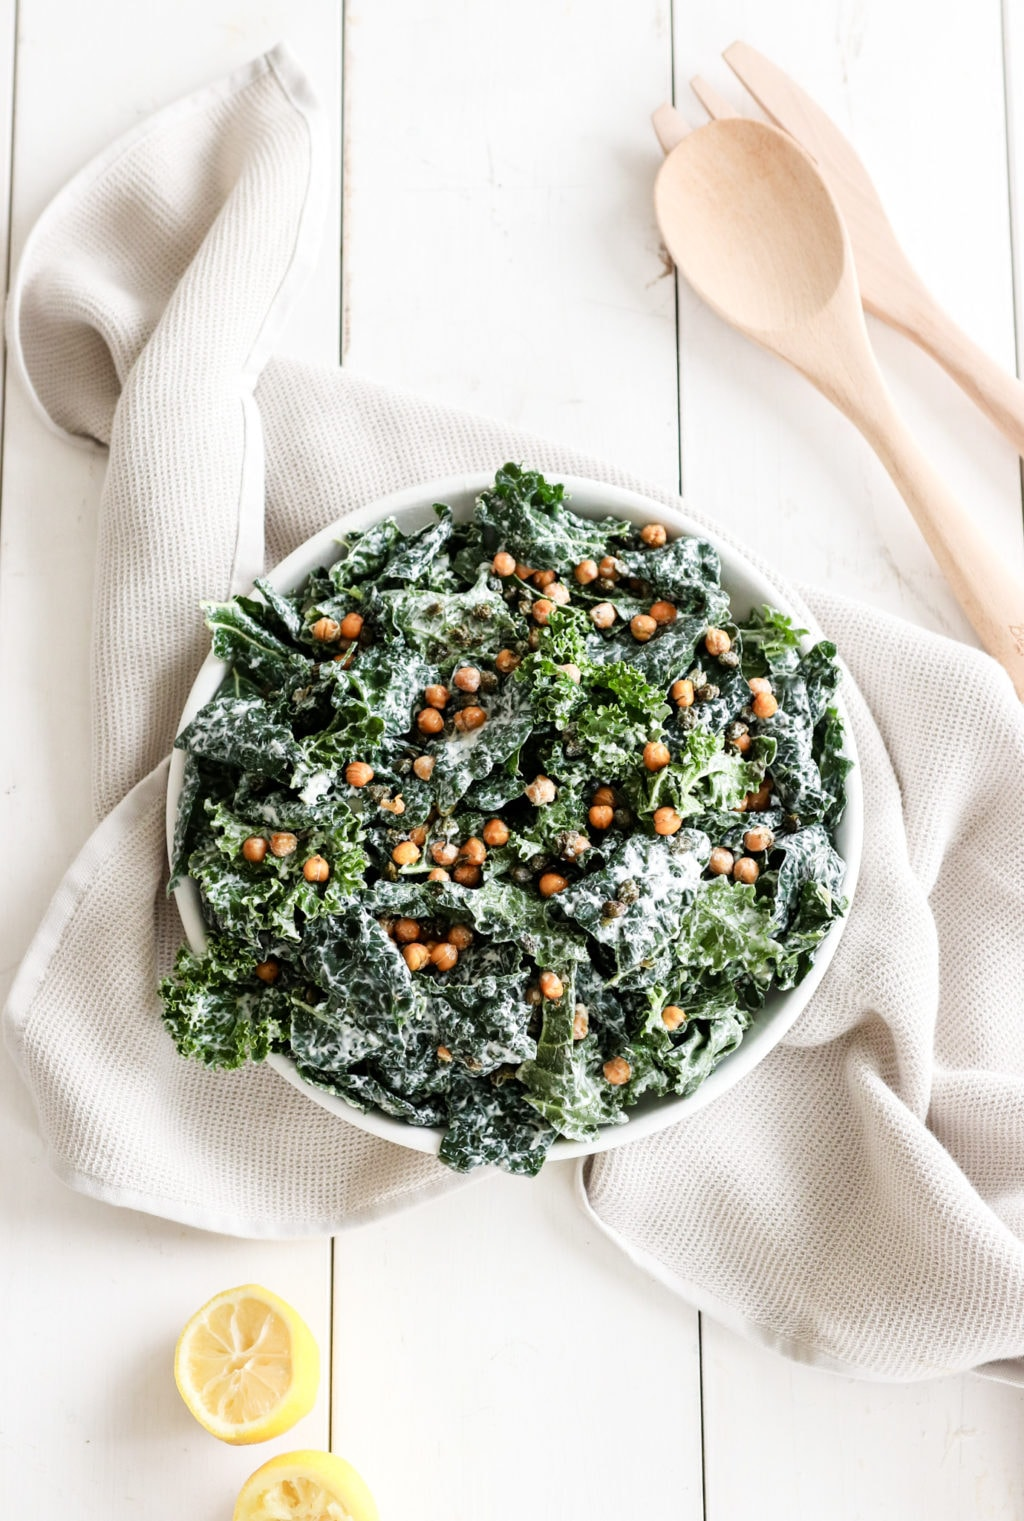 Chickpea kale caesar salad on a white plate over a neutral kitchen dish. Ingredients include: kale, chickpeas, capers, Greek yogurt, and garlic.